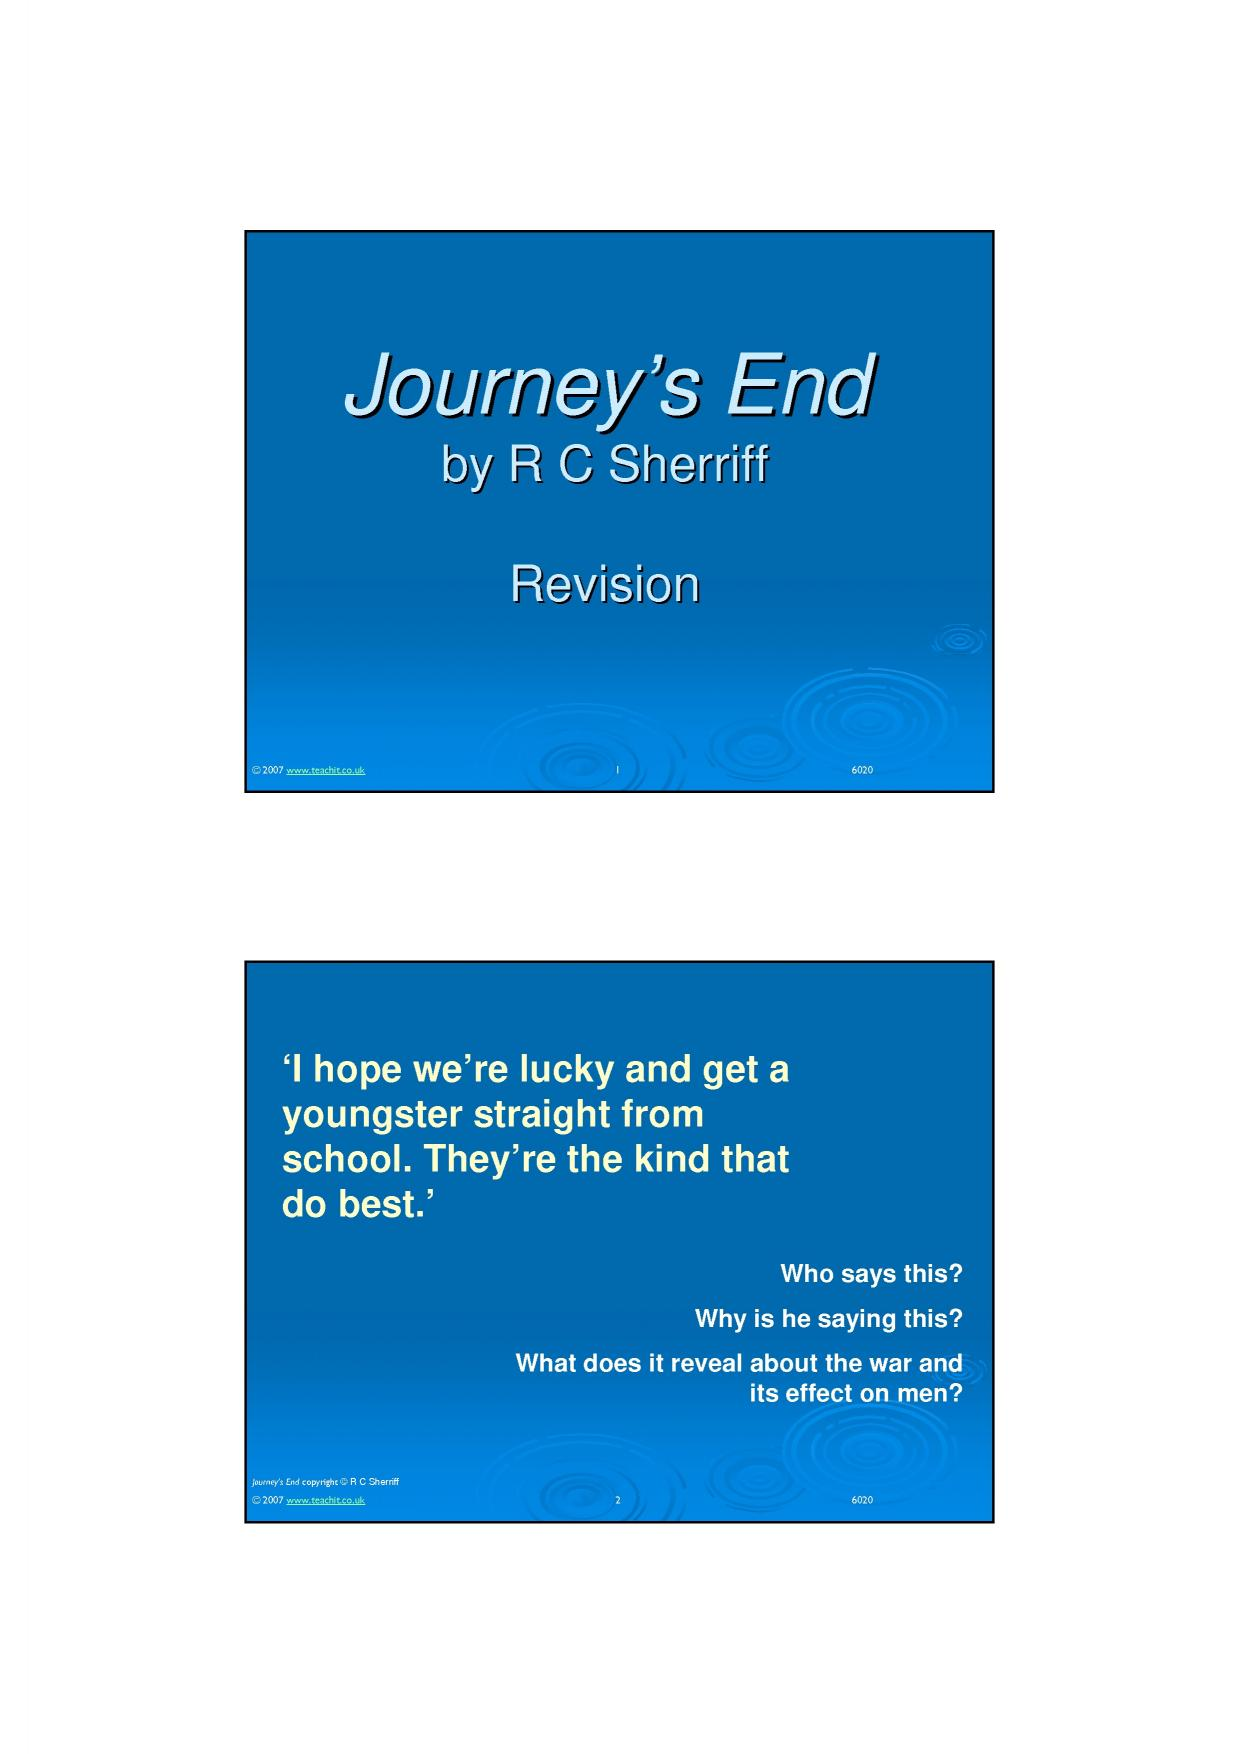 journeys end by r c sherriff 2 essay Journeys end act 2 begins with a feeling of hope  journey's end before act 2,  scene 1 osborne was putting a drunken  related gcse rc sheriff essays.